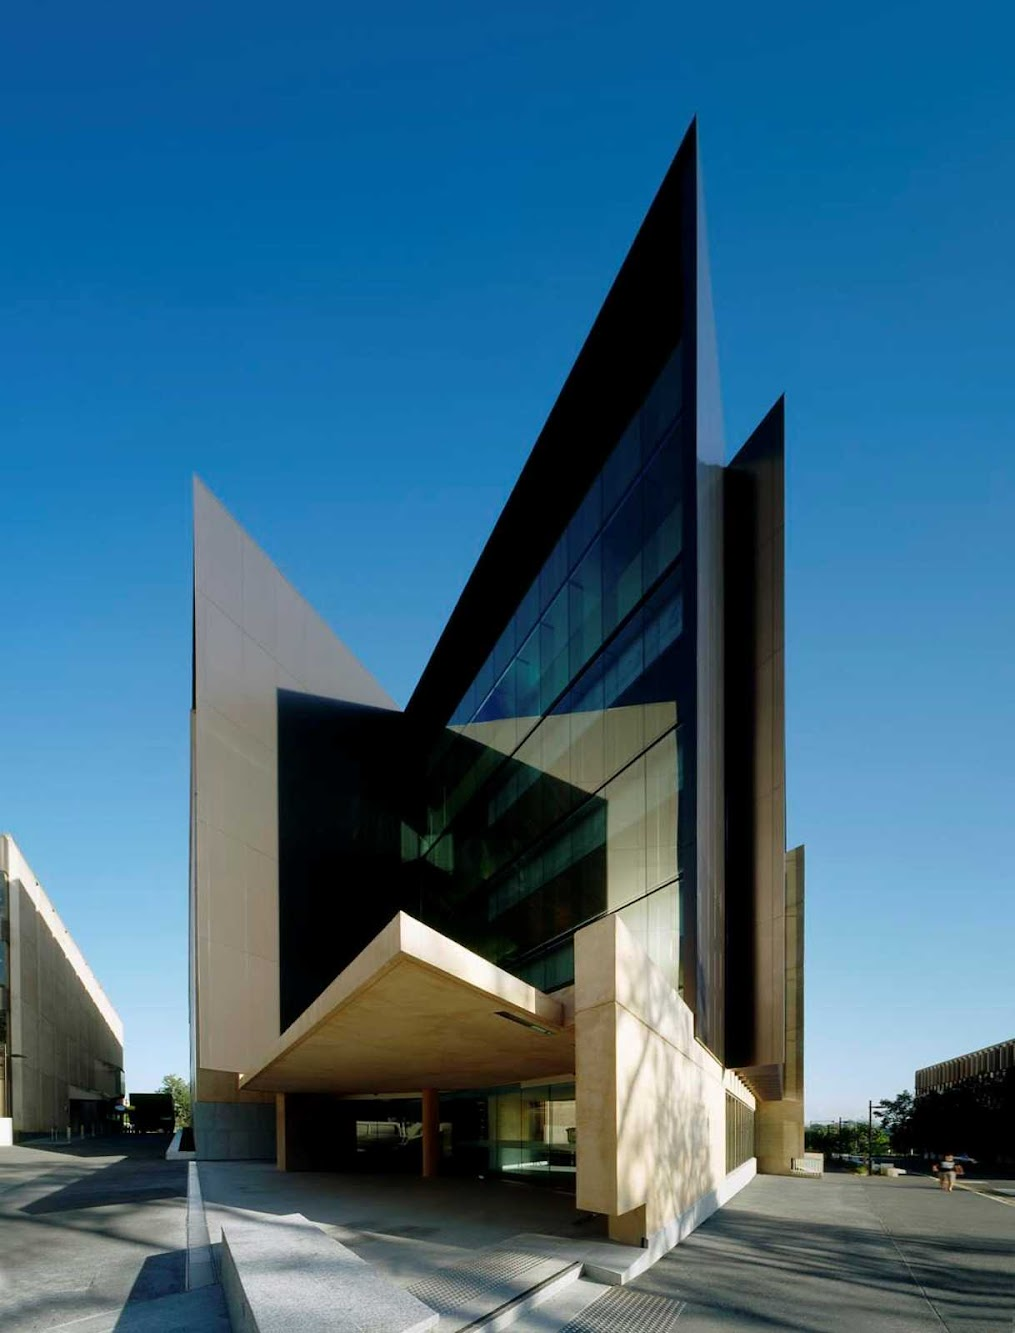 St Lucia Queensland, Australia: Sir Llew Edwards Building by Richard Kirk Architect